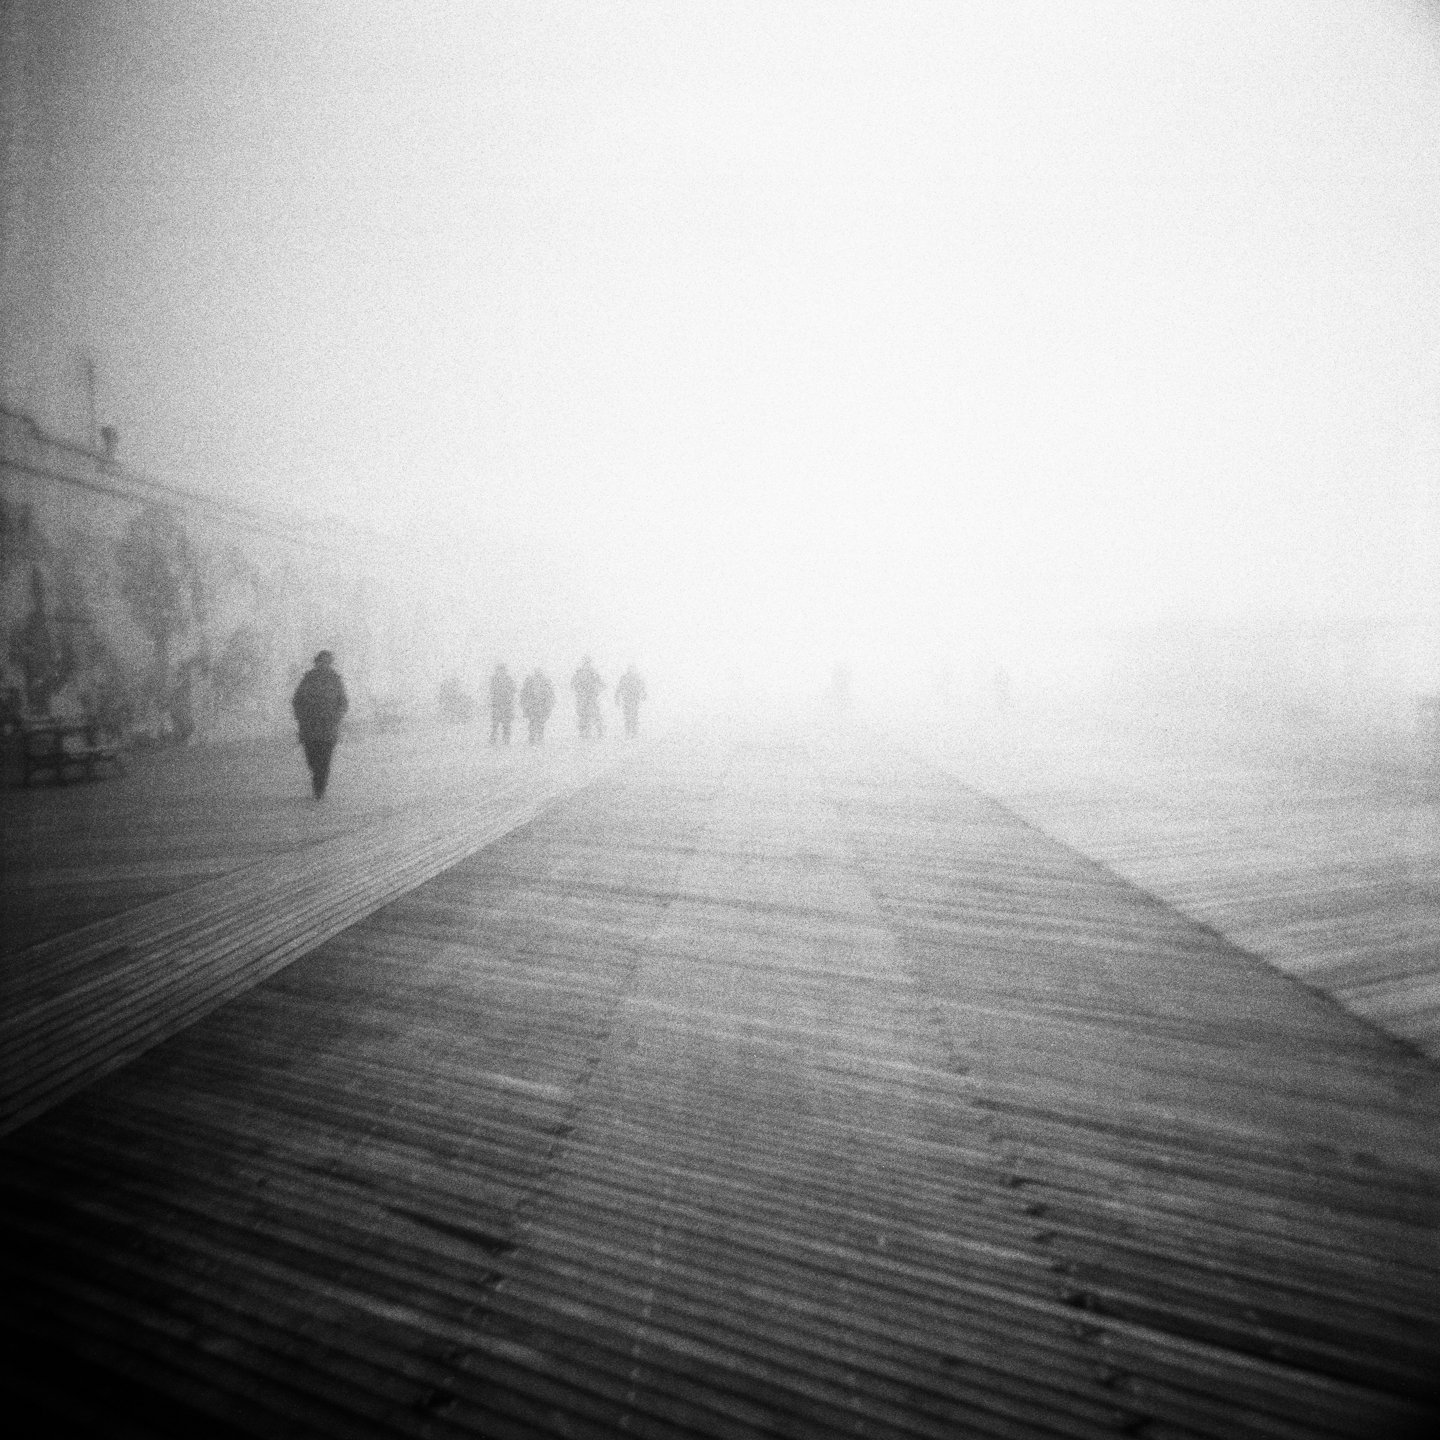 FIGURES ON BOARDWALK